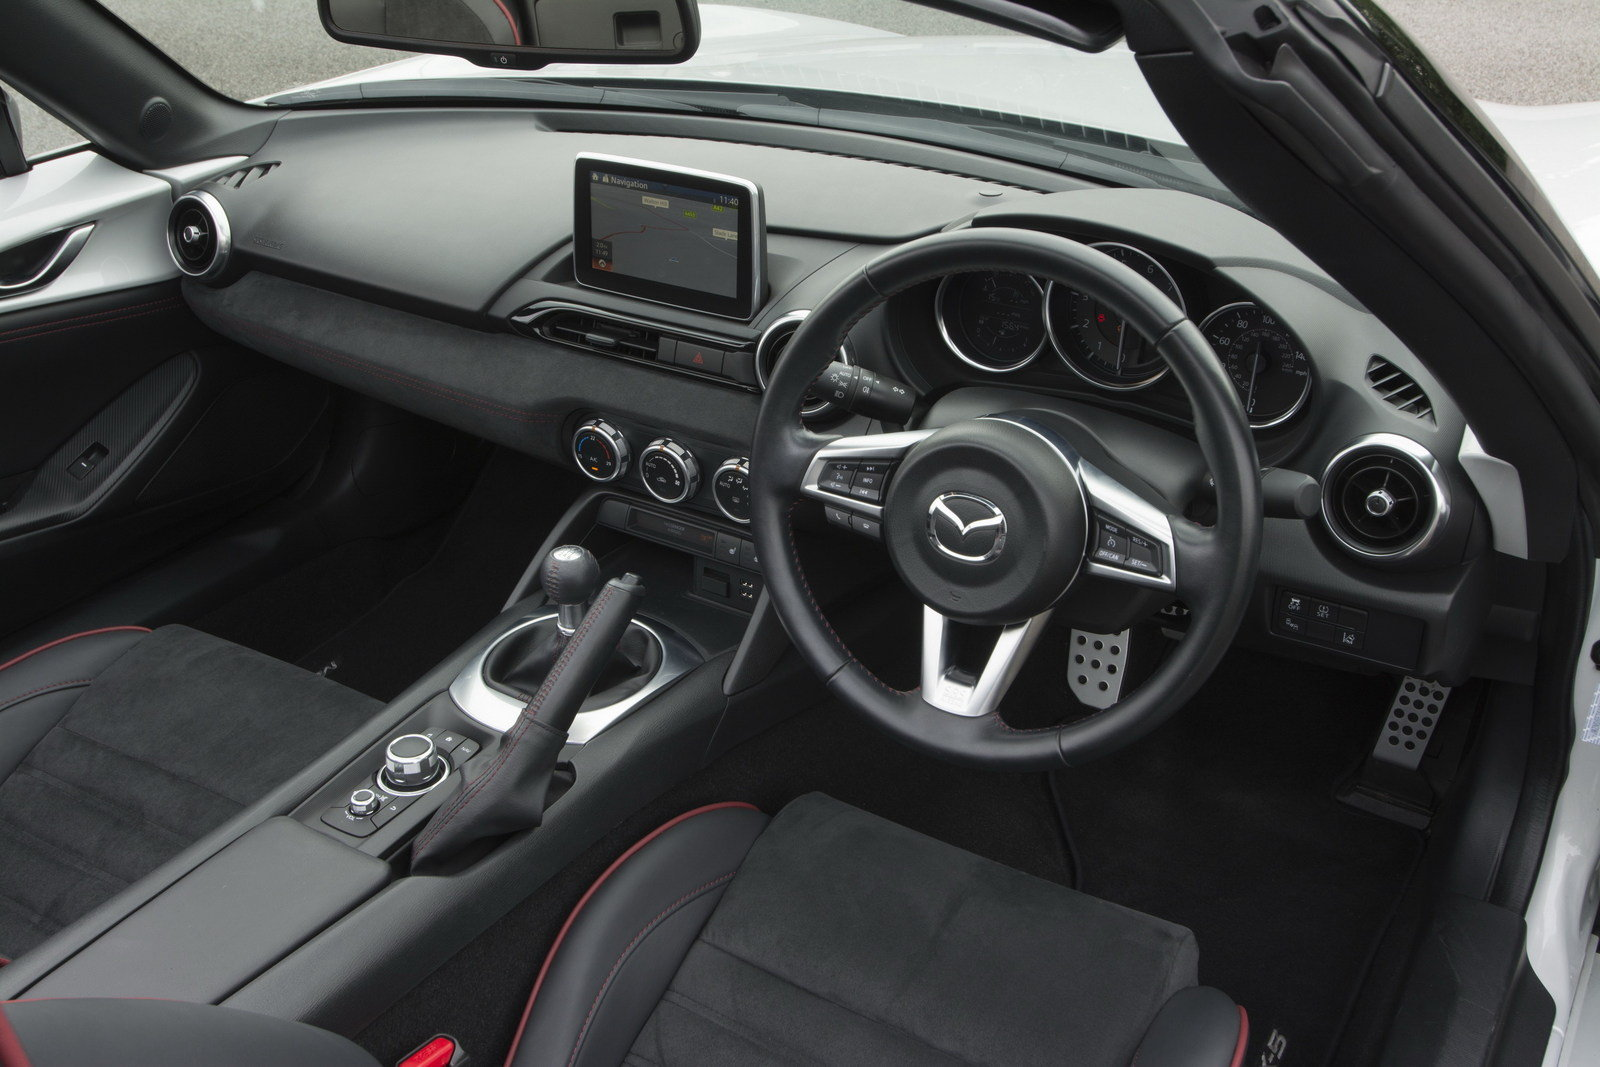 2015 mazda mx 5 sport recaro limited edition dark cars wallpapers. Black Bedroom Furniture Sets. Home Design Ideas